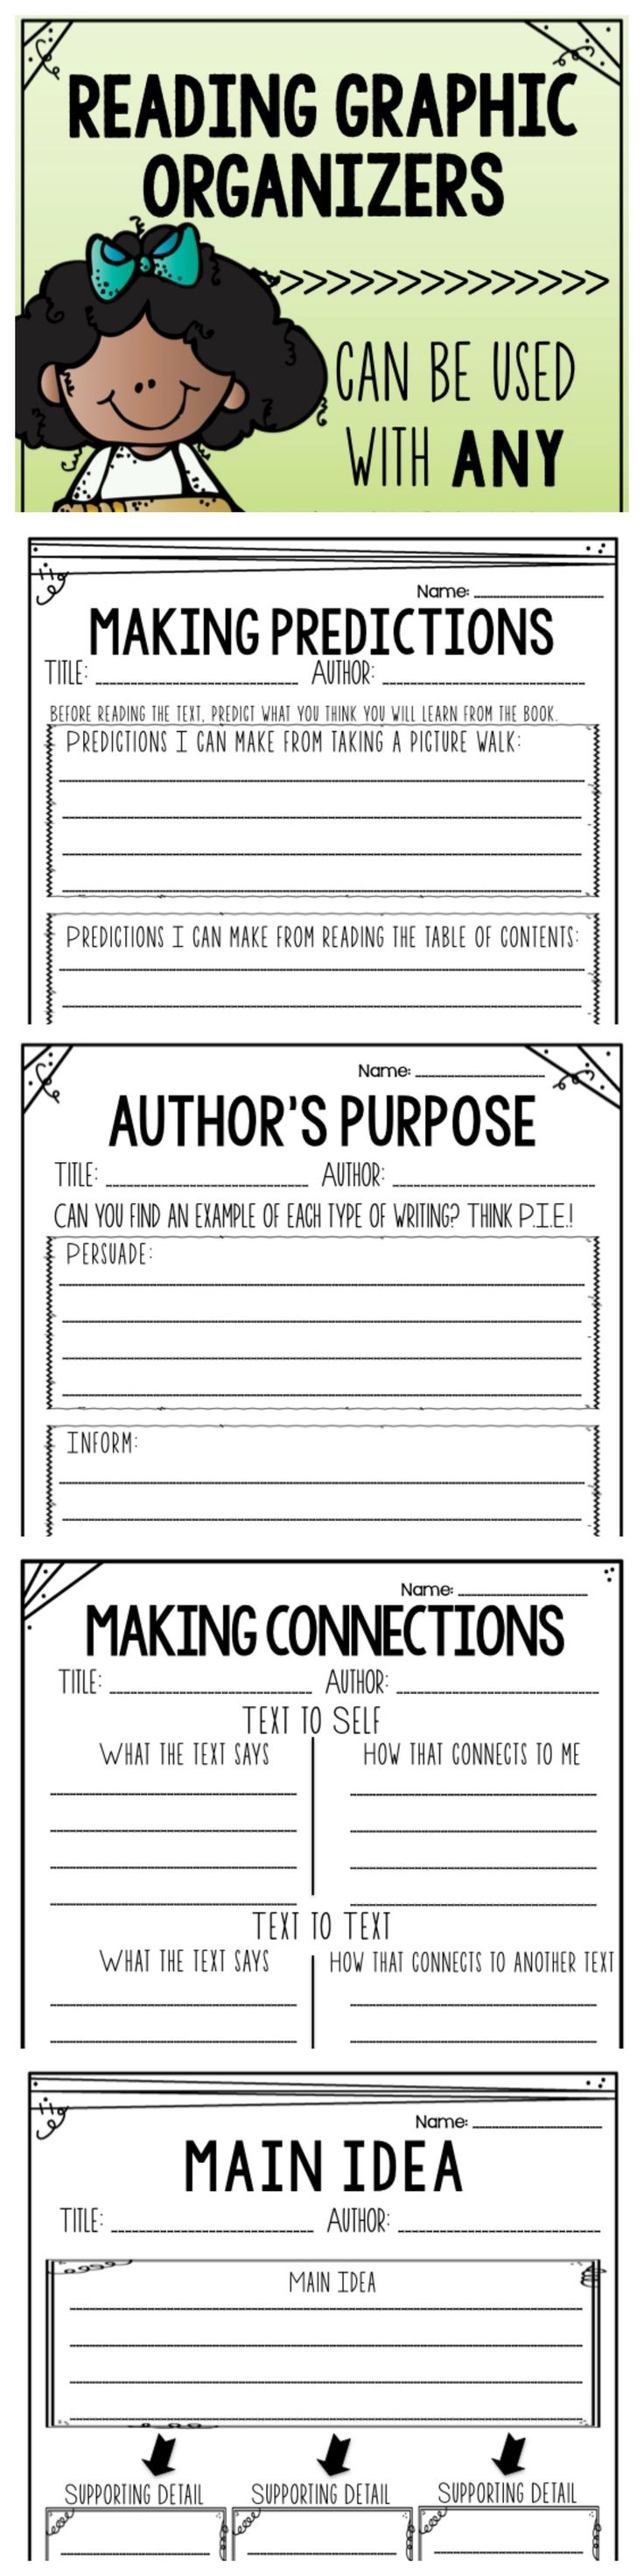 214 best graphic organizer images on Pinterest #0: fa62f3bd0781bfc781fdaf7fbf1e65ae reading strategies reading activities